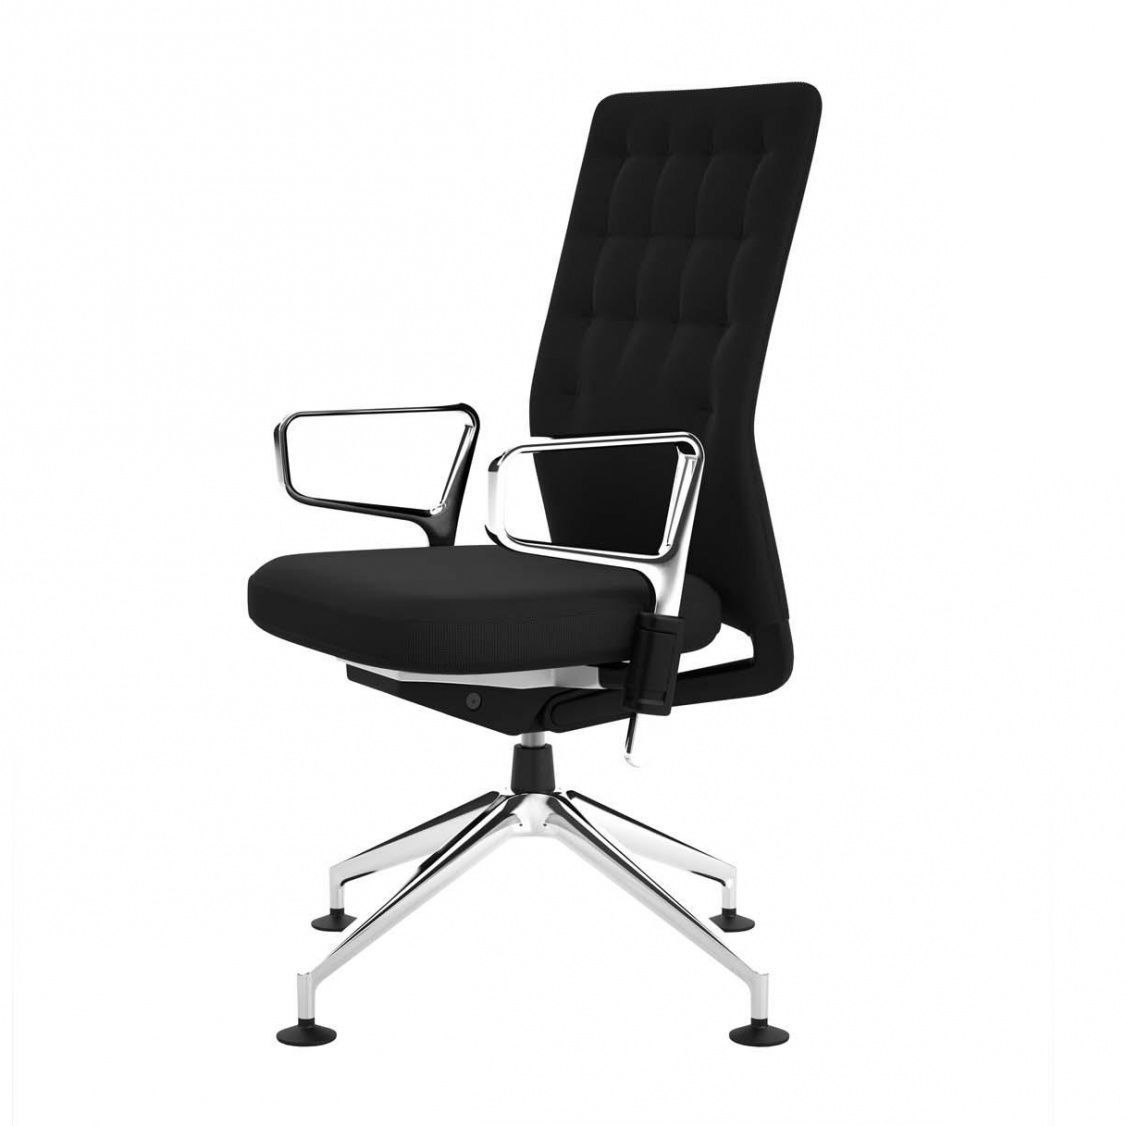 Konferenzstuhl vitra  ID Trim Citterio Office Conference Chair | Vitra | AmbienteDirect.com